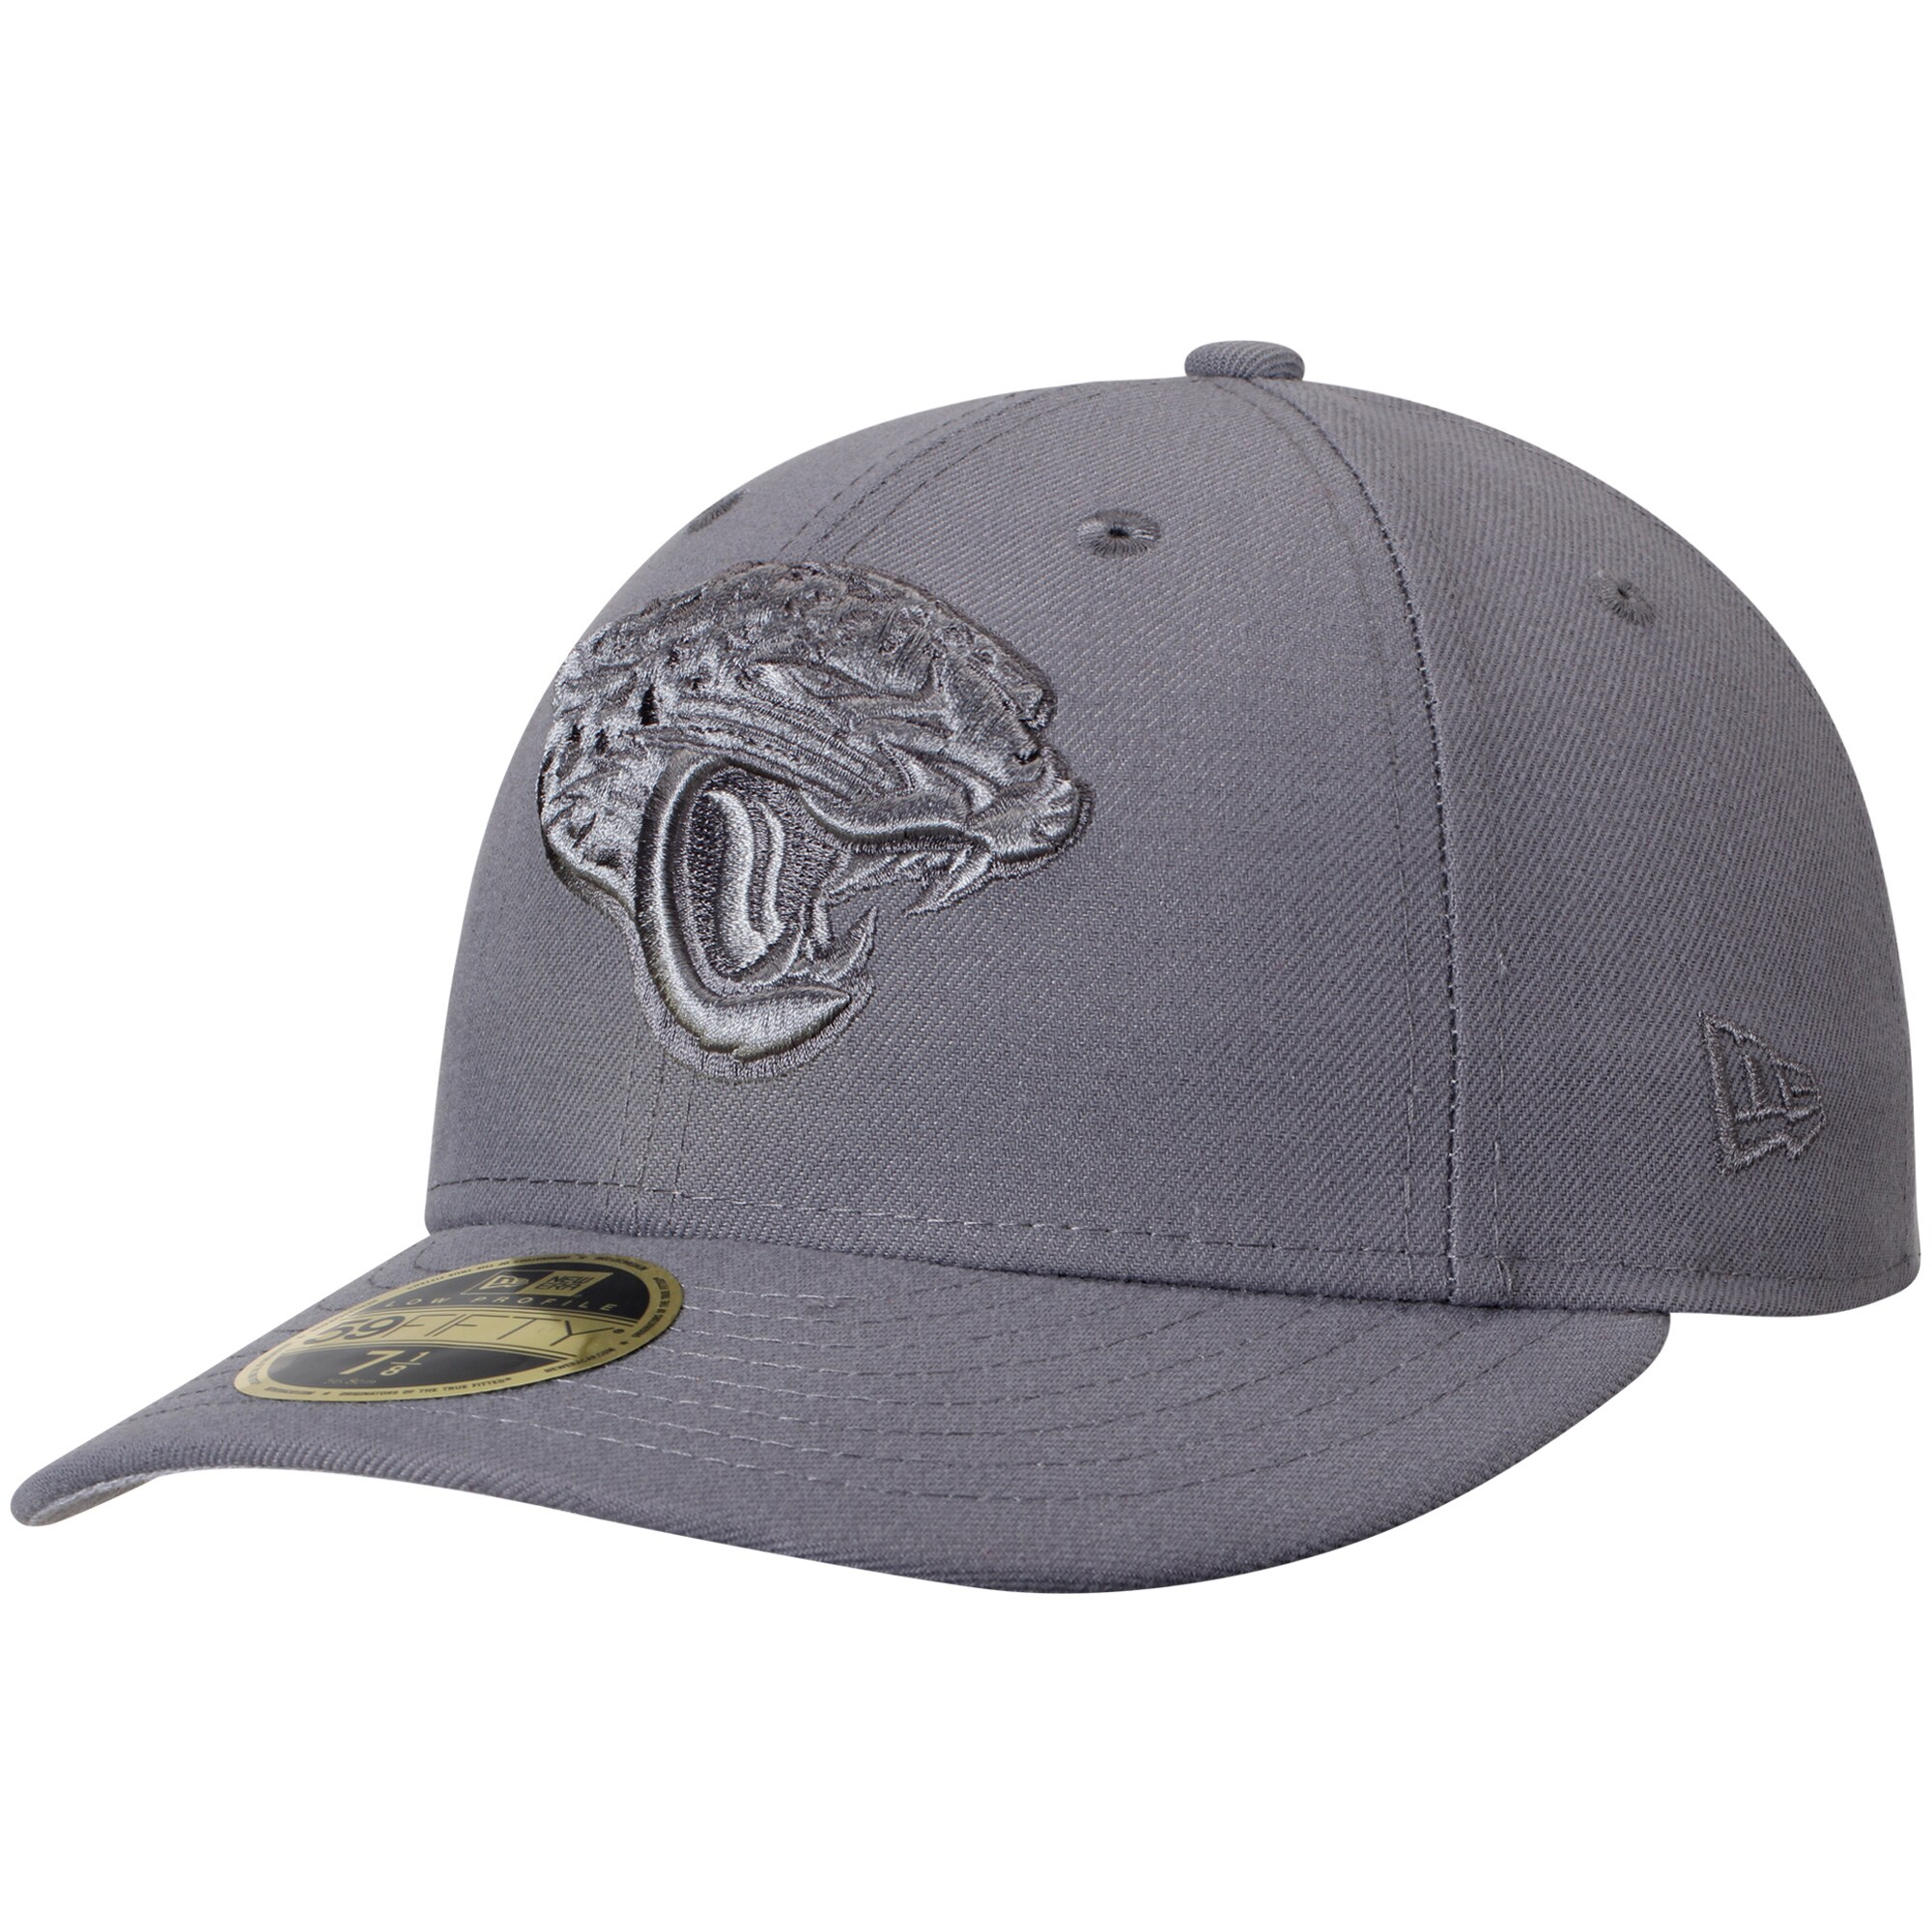 Jacksonville Jaguars New Era Storm Gray League Basic Low Profile 59FIFTY Structured Hat